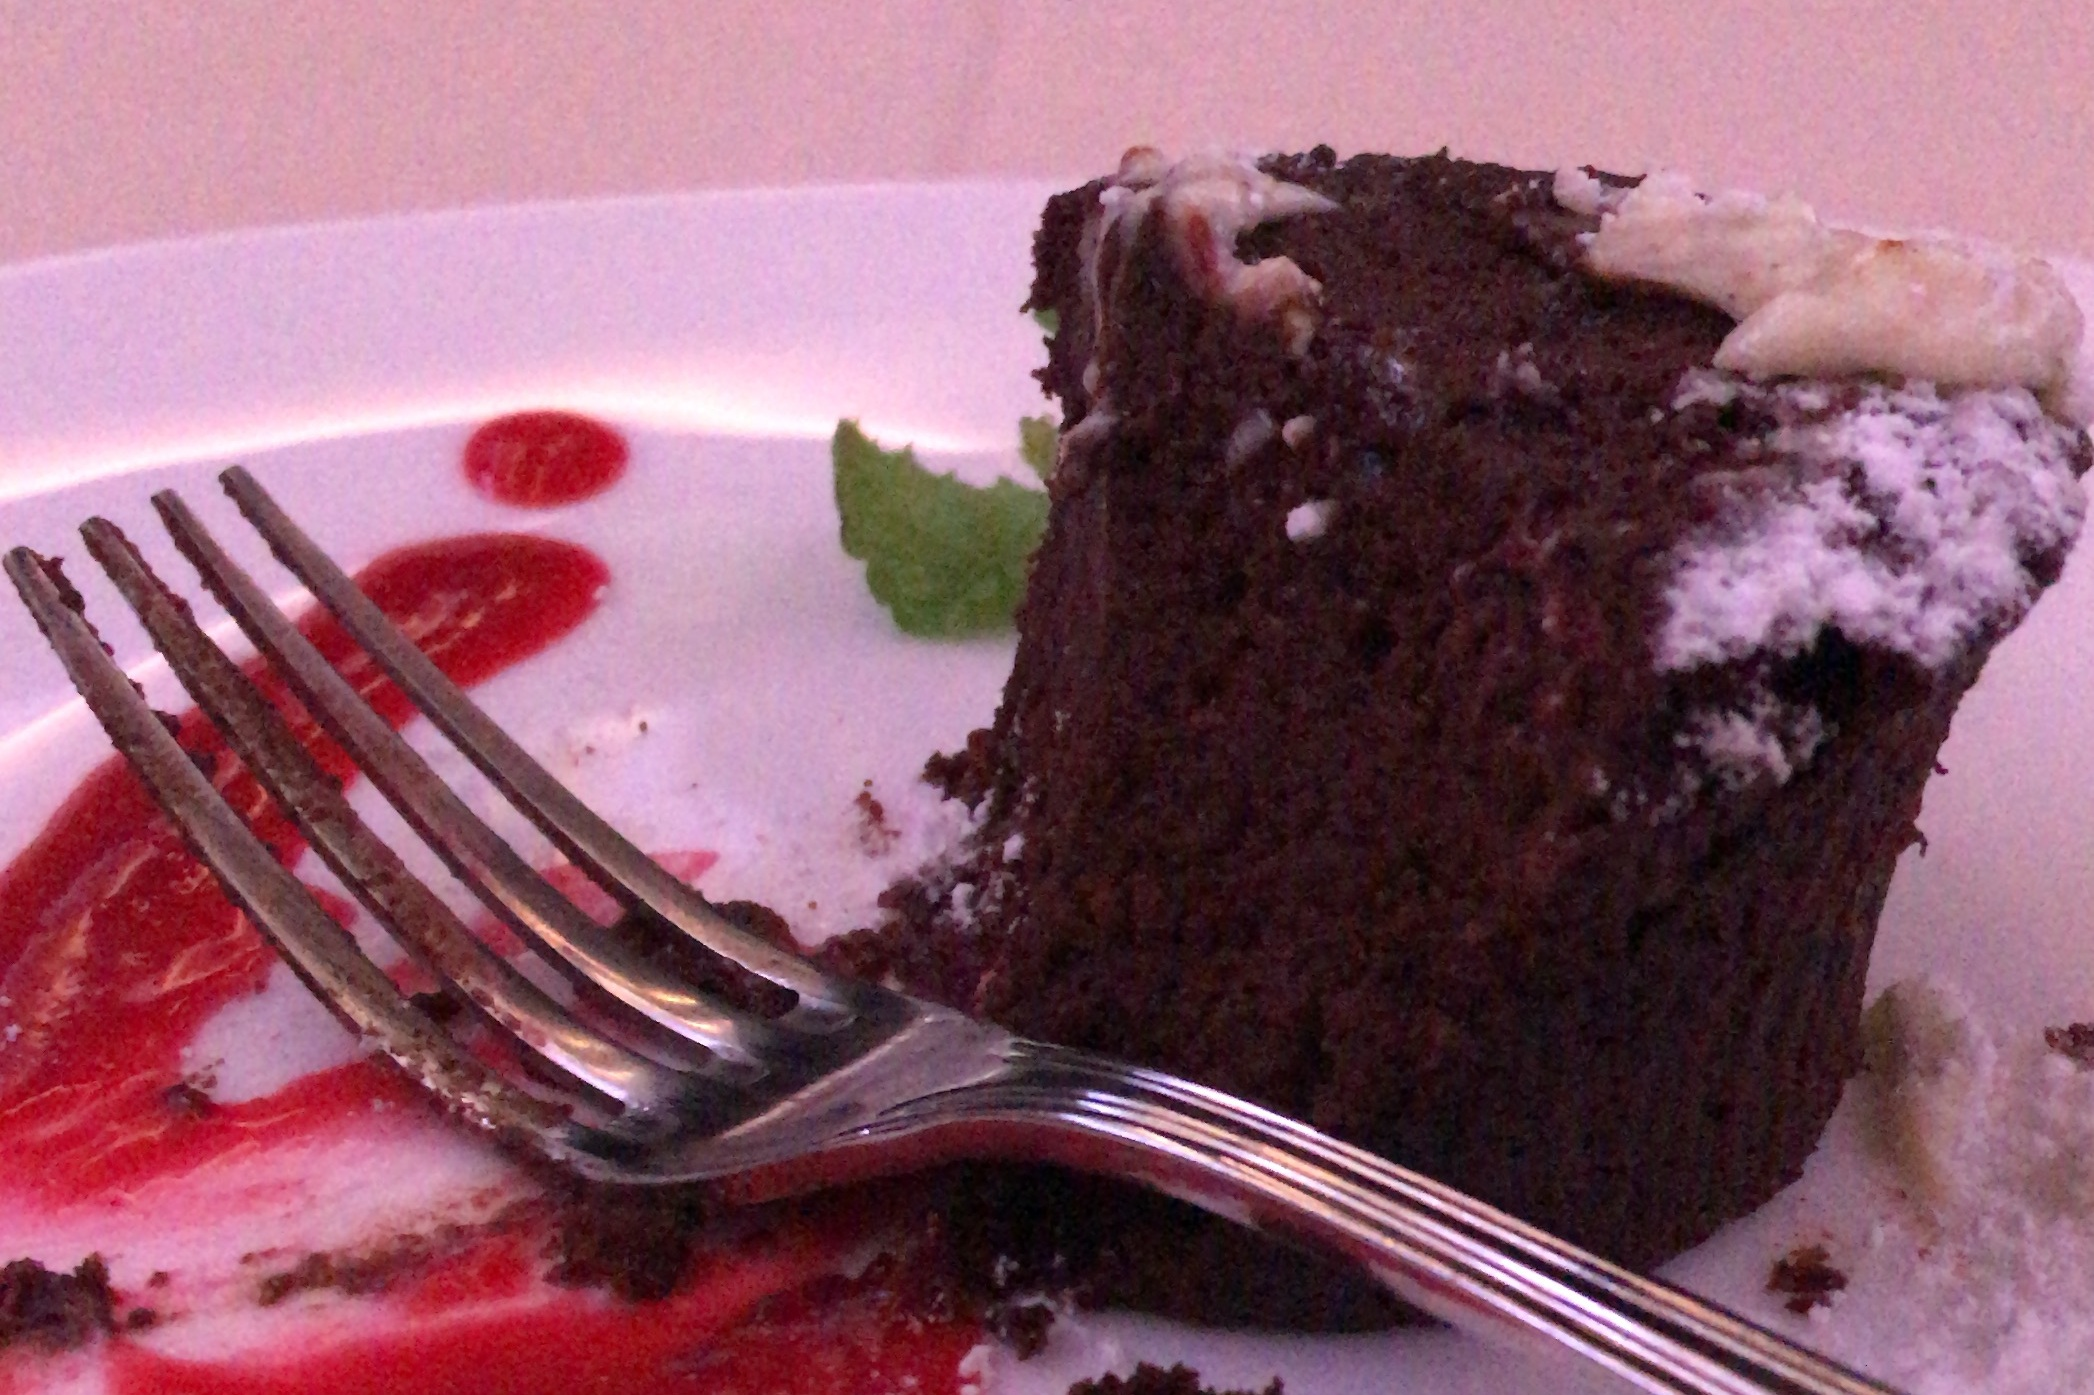 Asiana Airlines First Class – Chocolate fondant cake